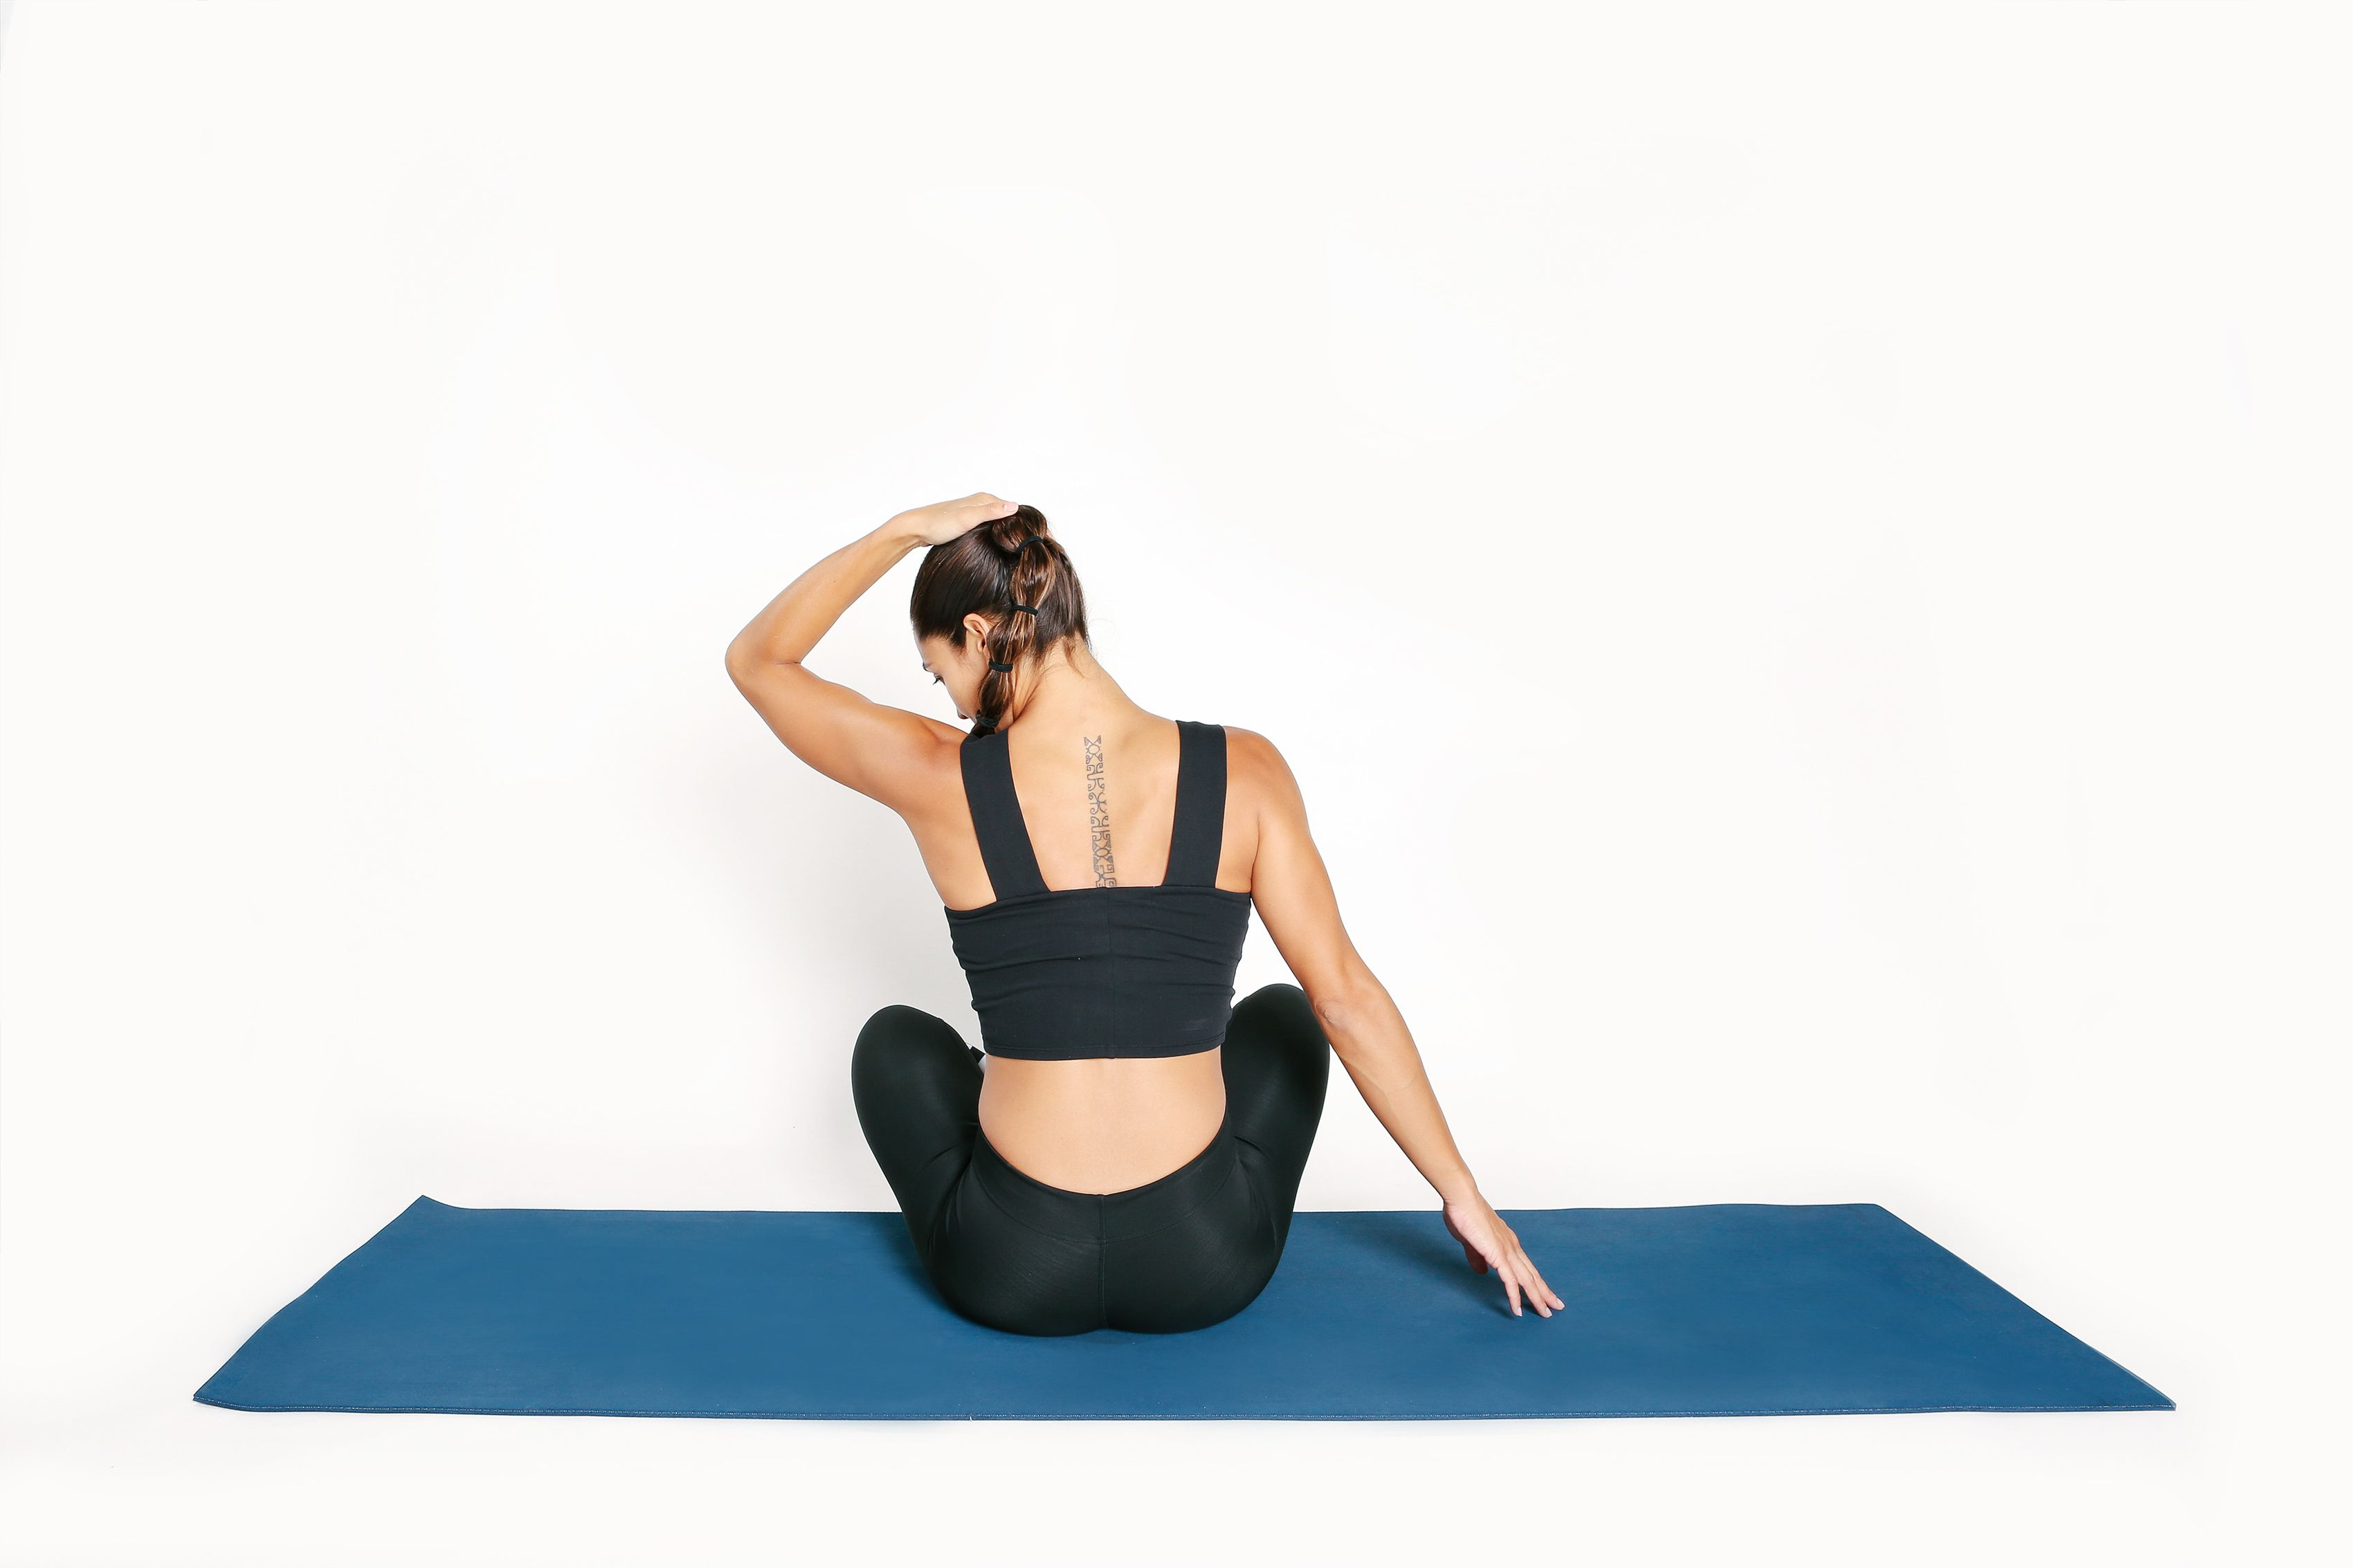 8 Neck Exercises to Ease Pain and Soreness